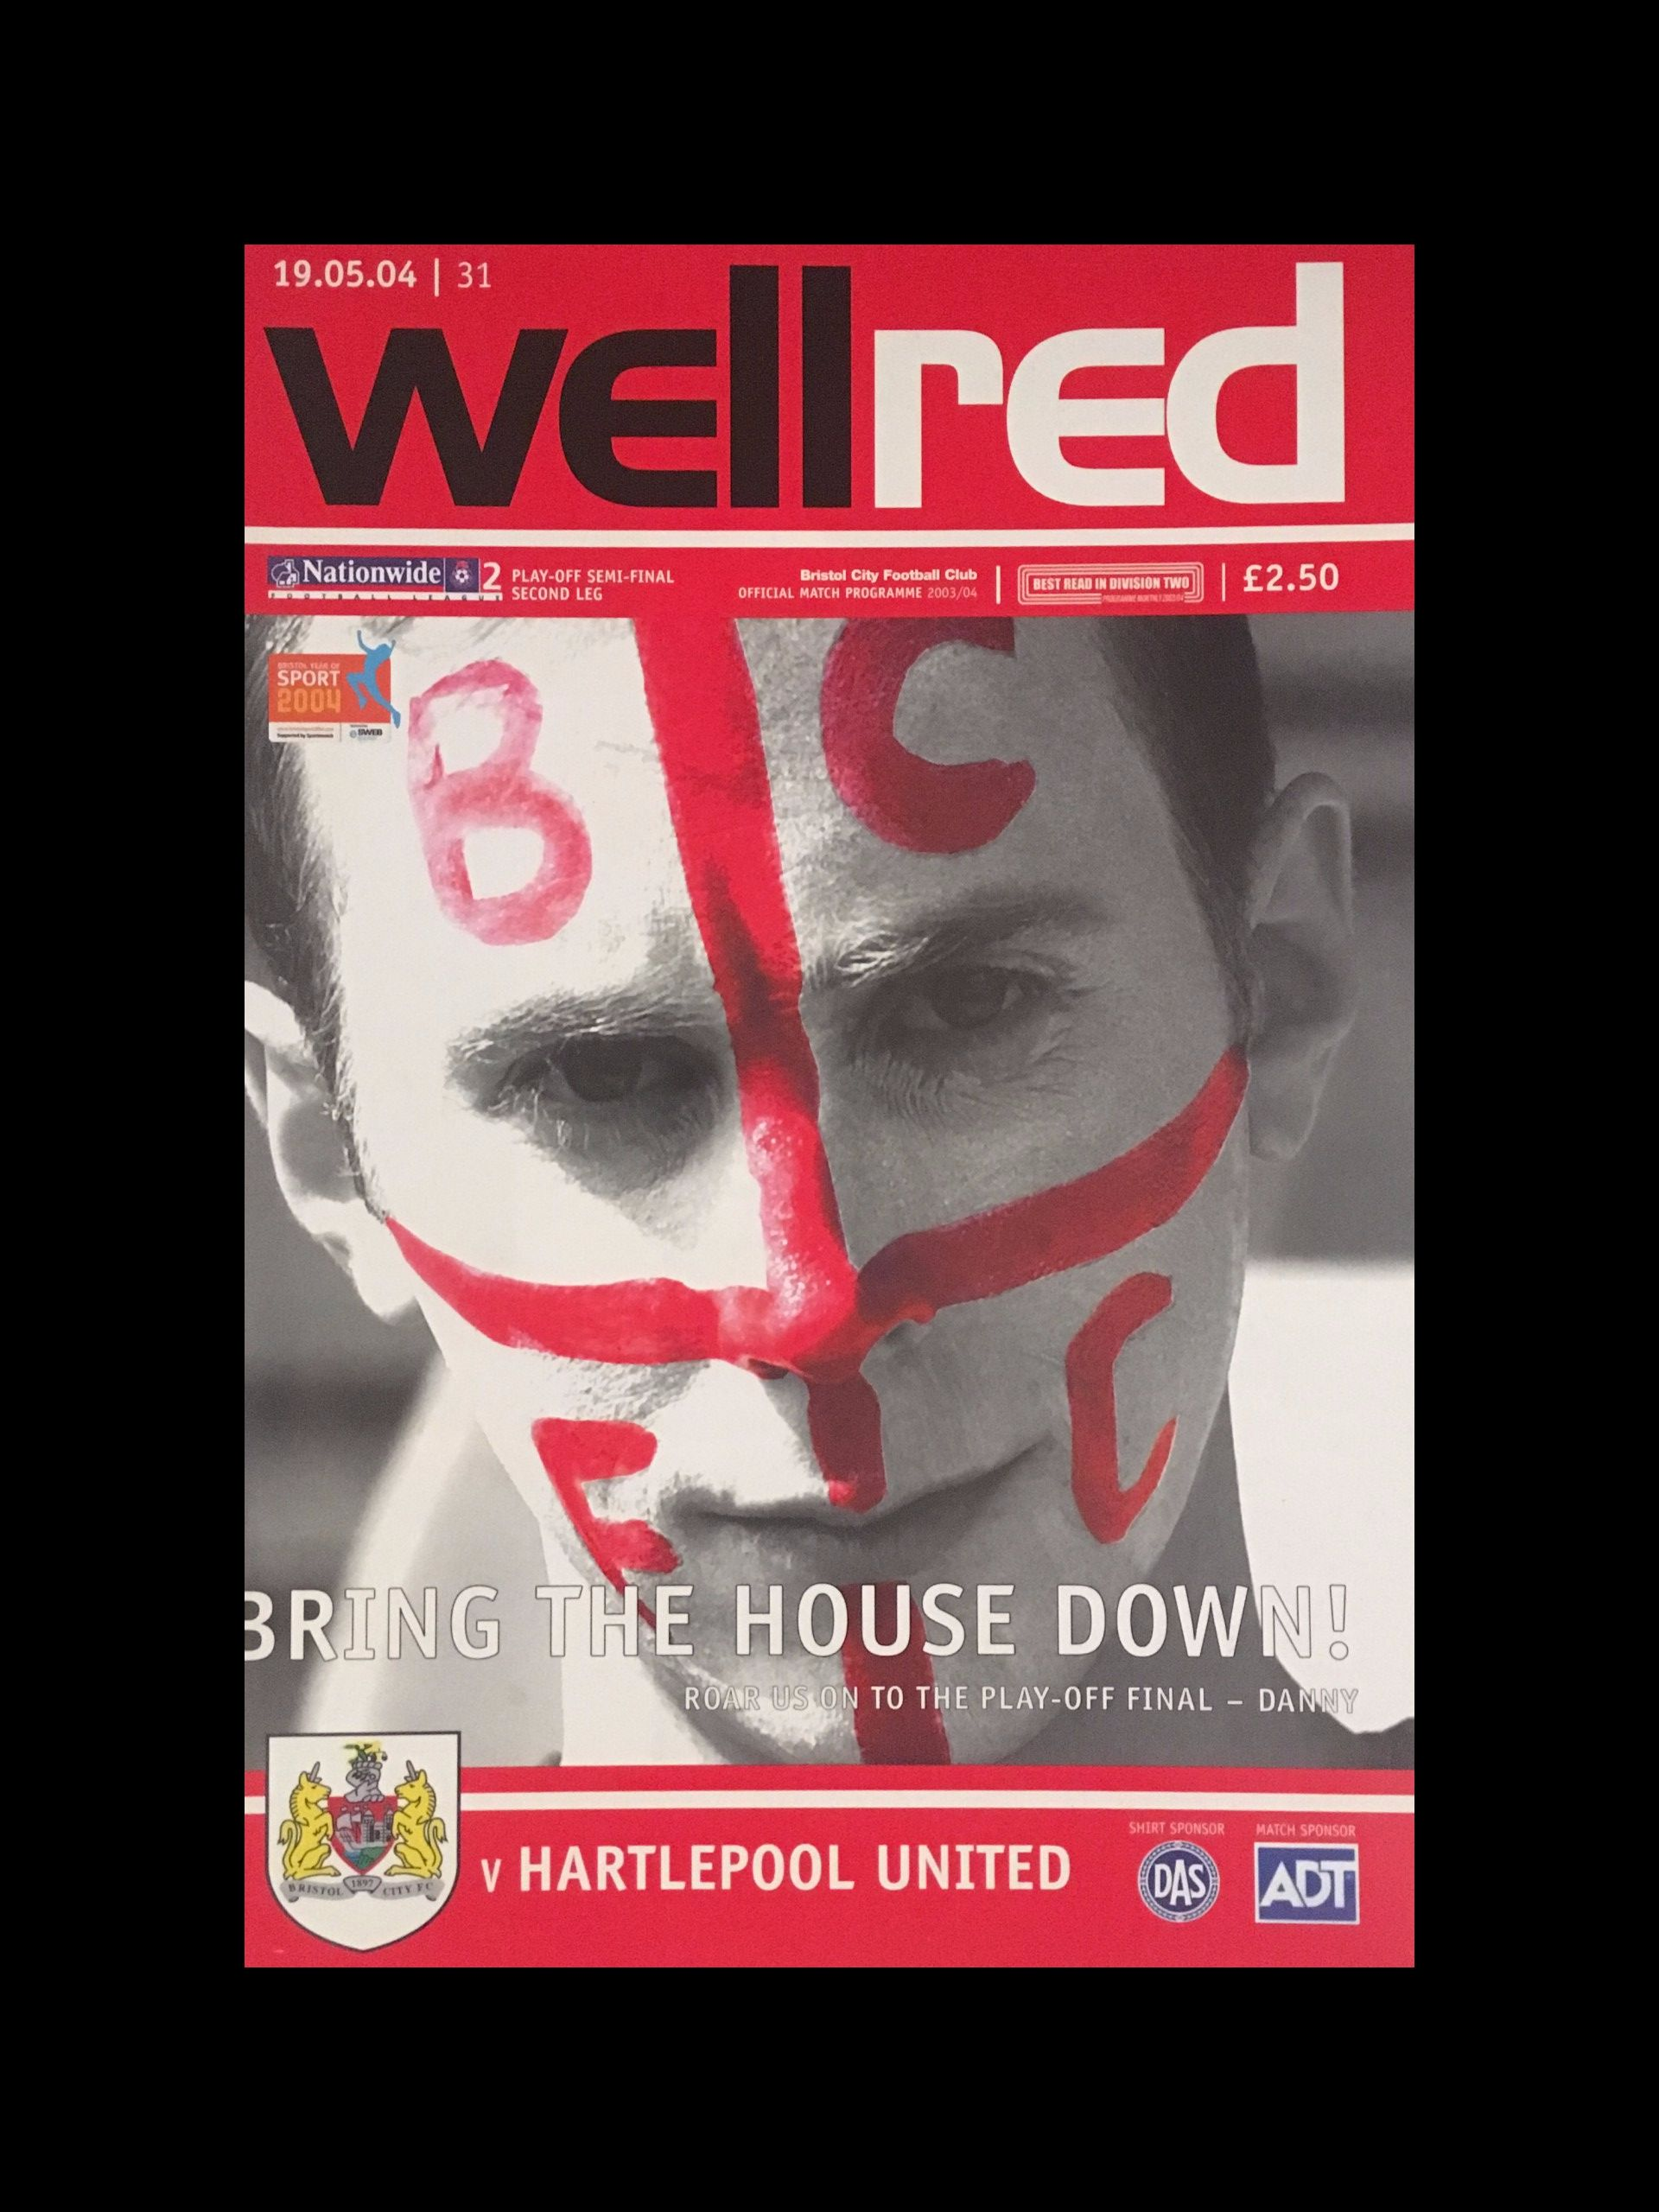 Bristol City v Hartlepool United 19-05-2004 Programme